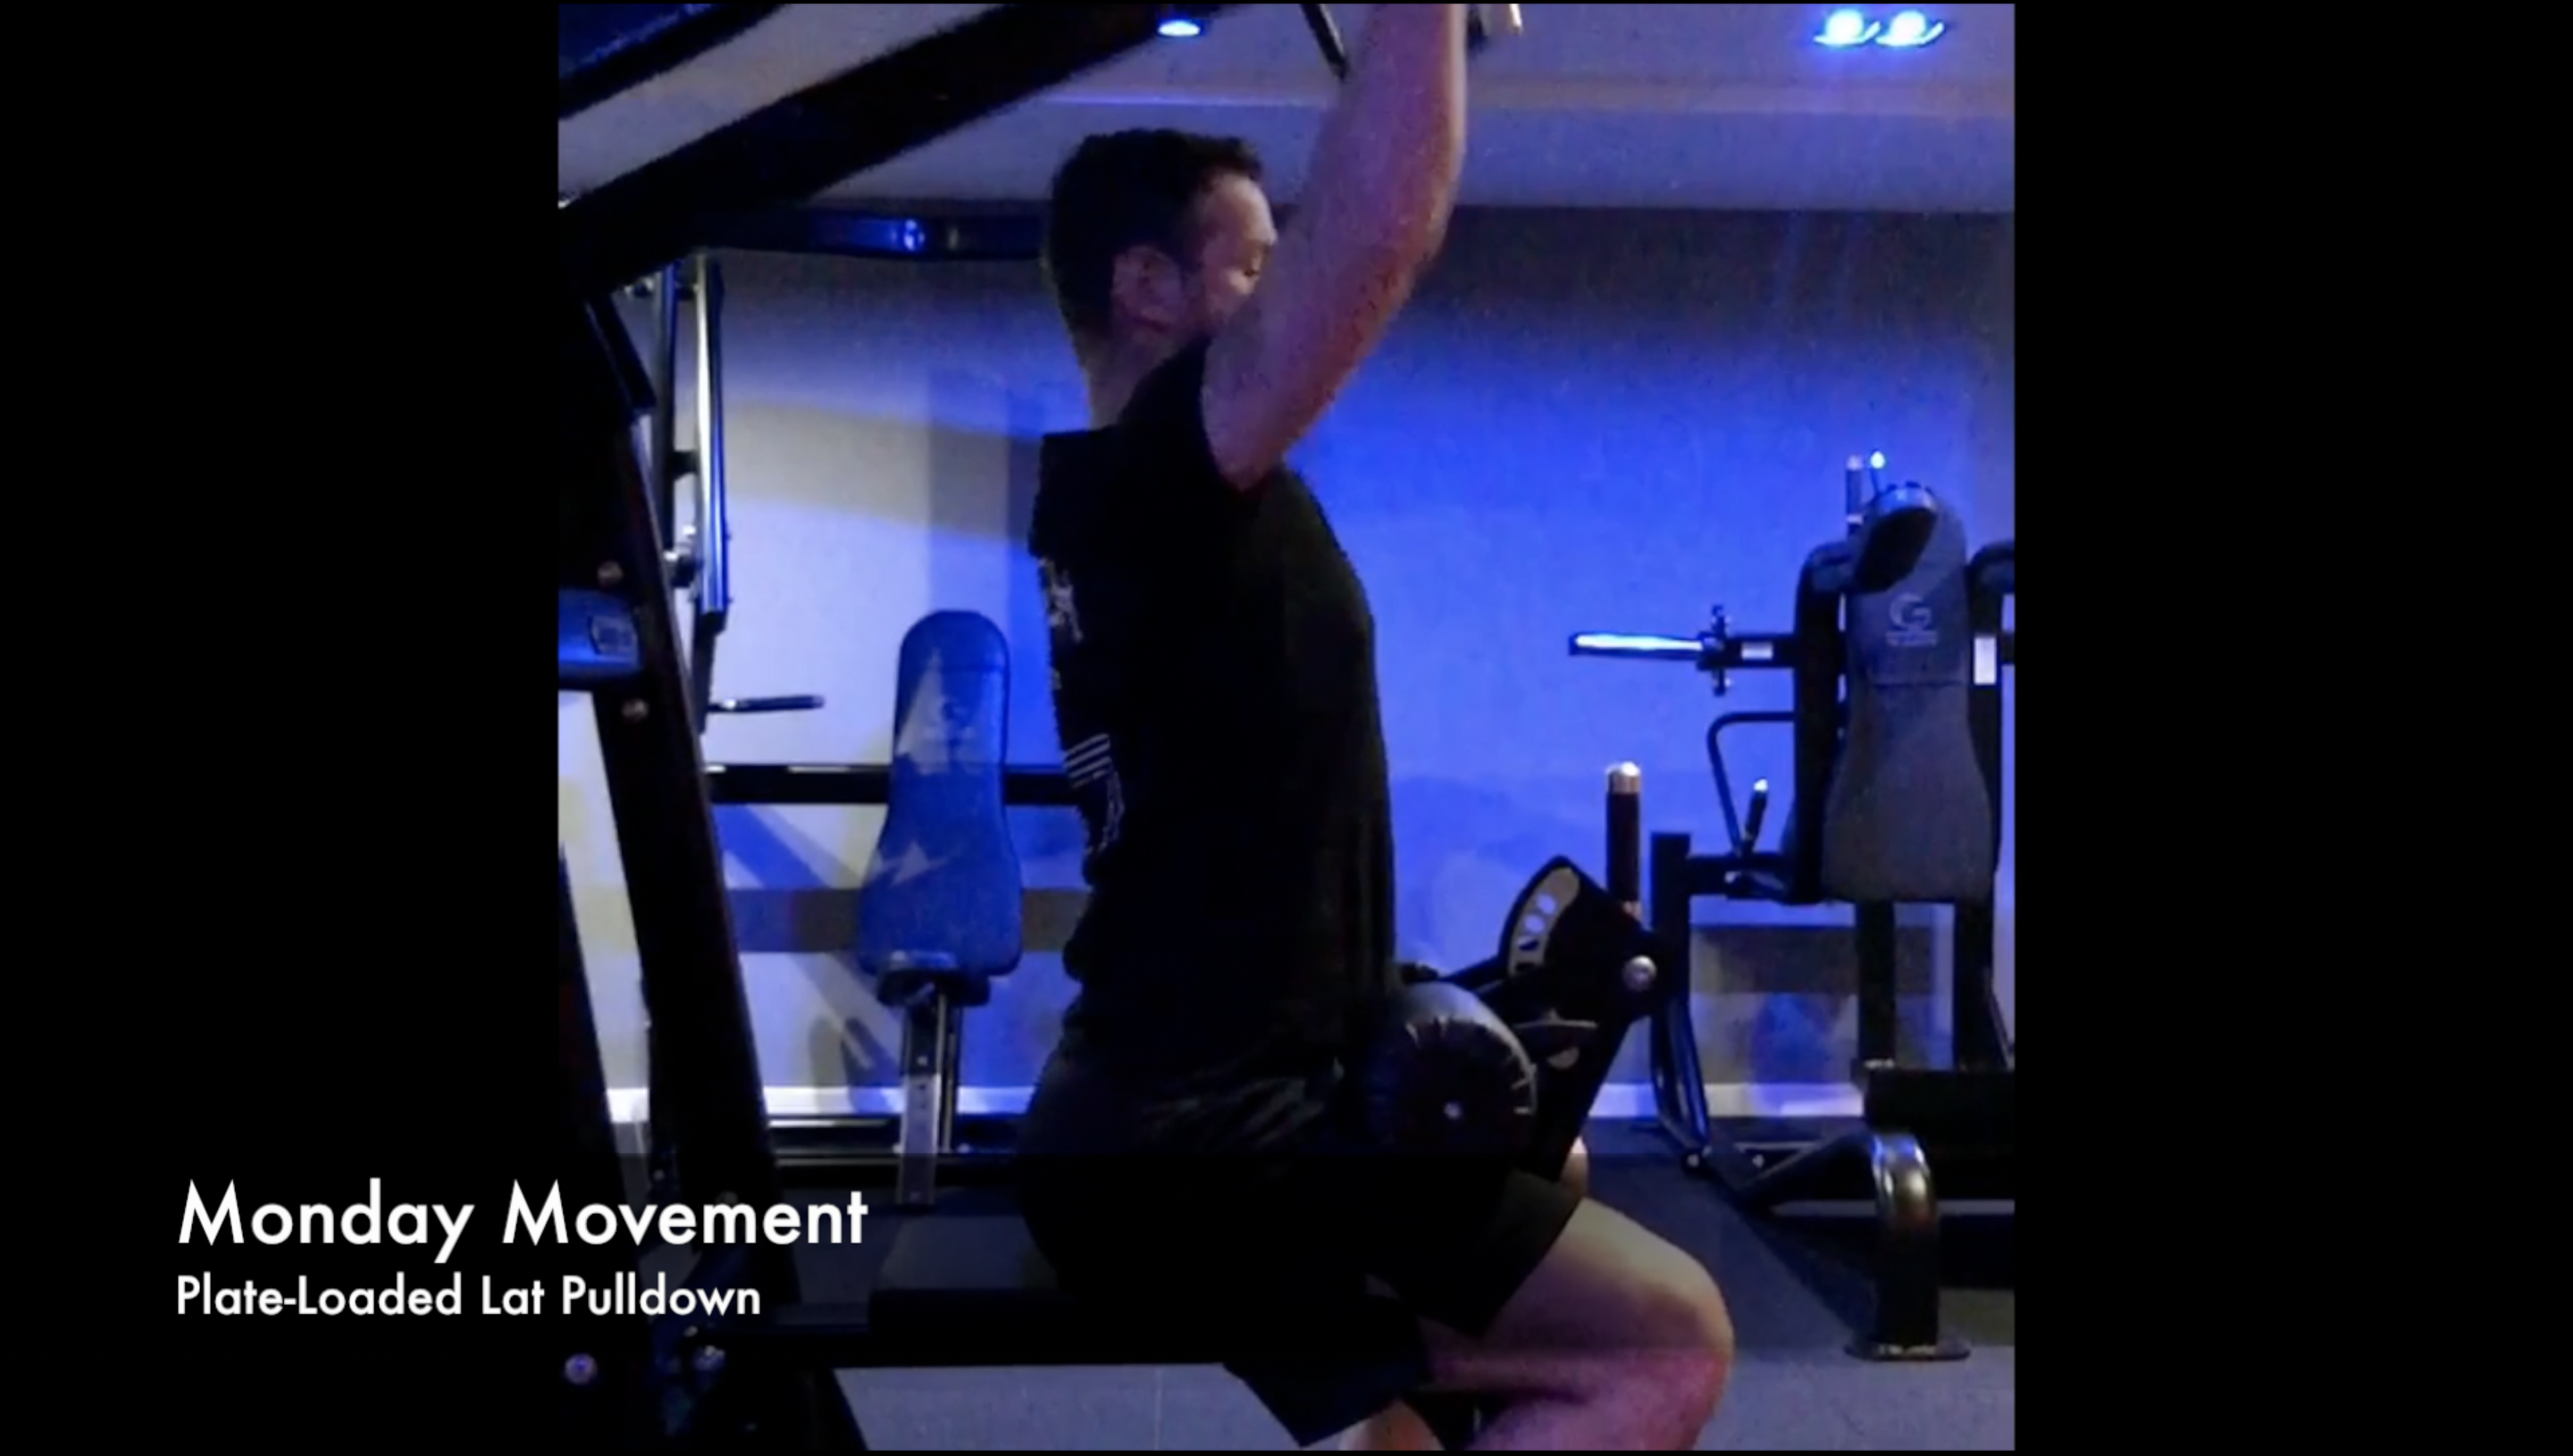 Plate-Loaded Lat Pulldown